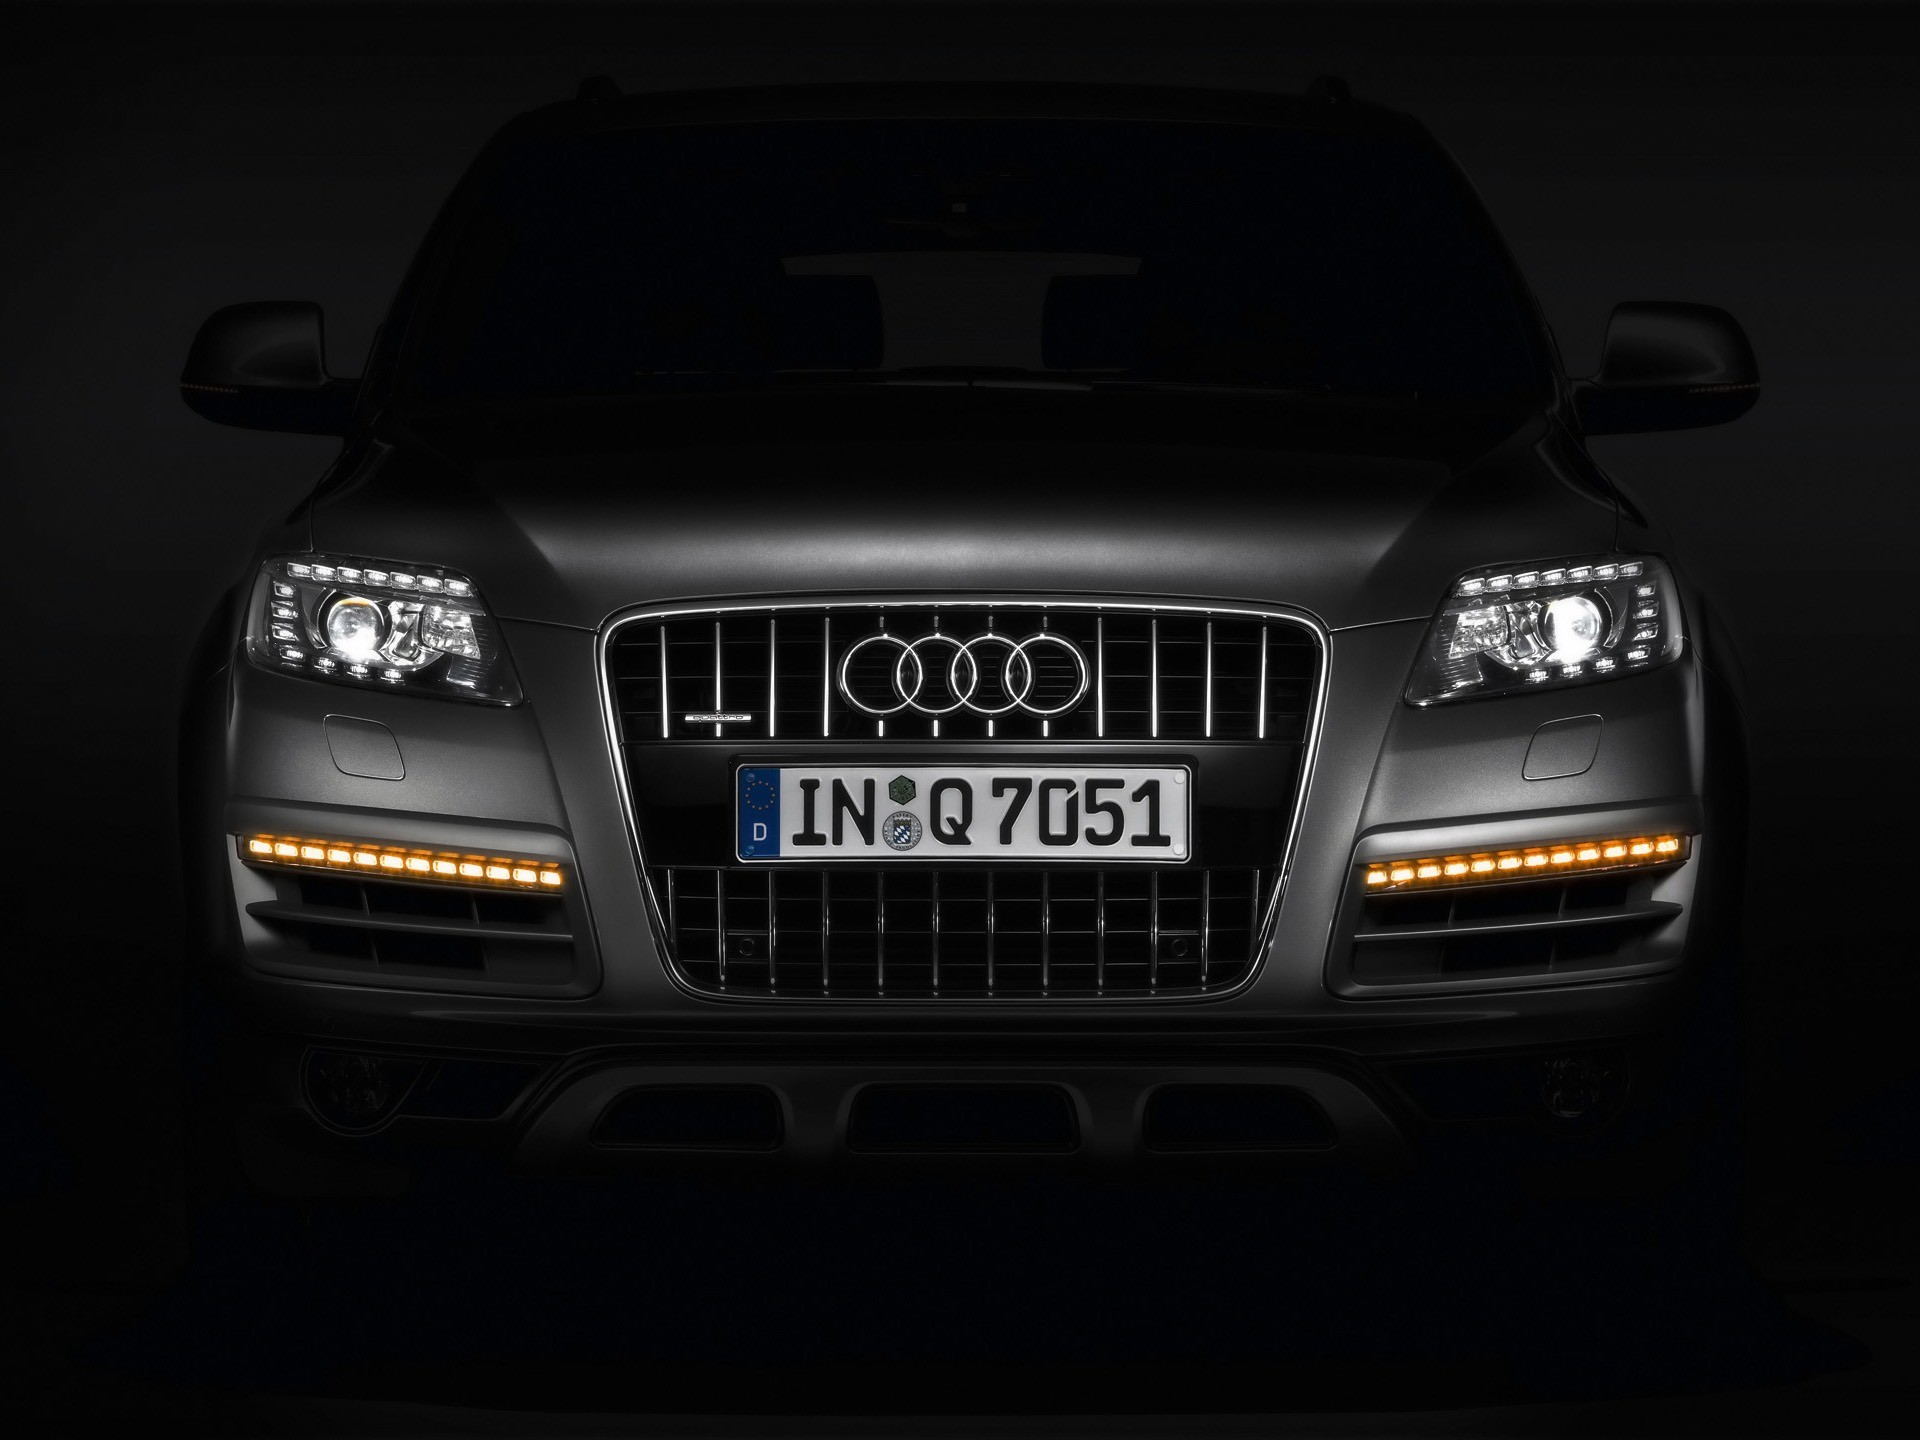 1920x1200 Audi Car Wallpaper Tumblr